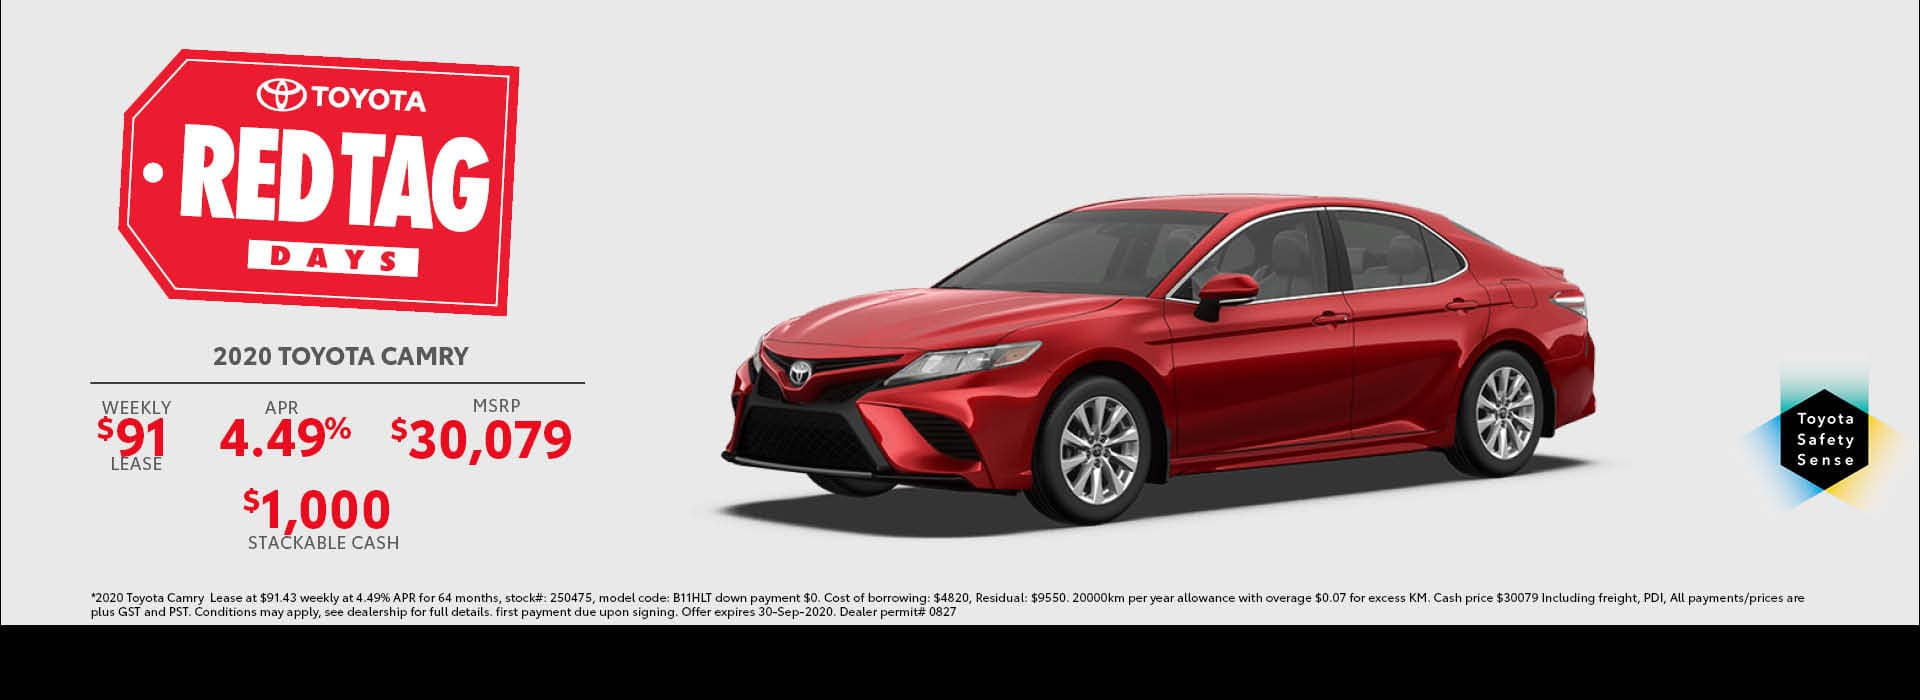 2020_Camry_Desktop_Home_Page_Banner_Oct2020